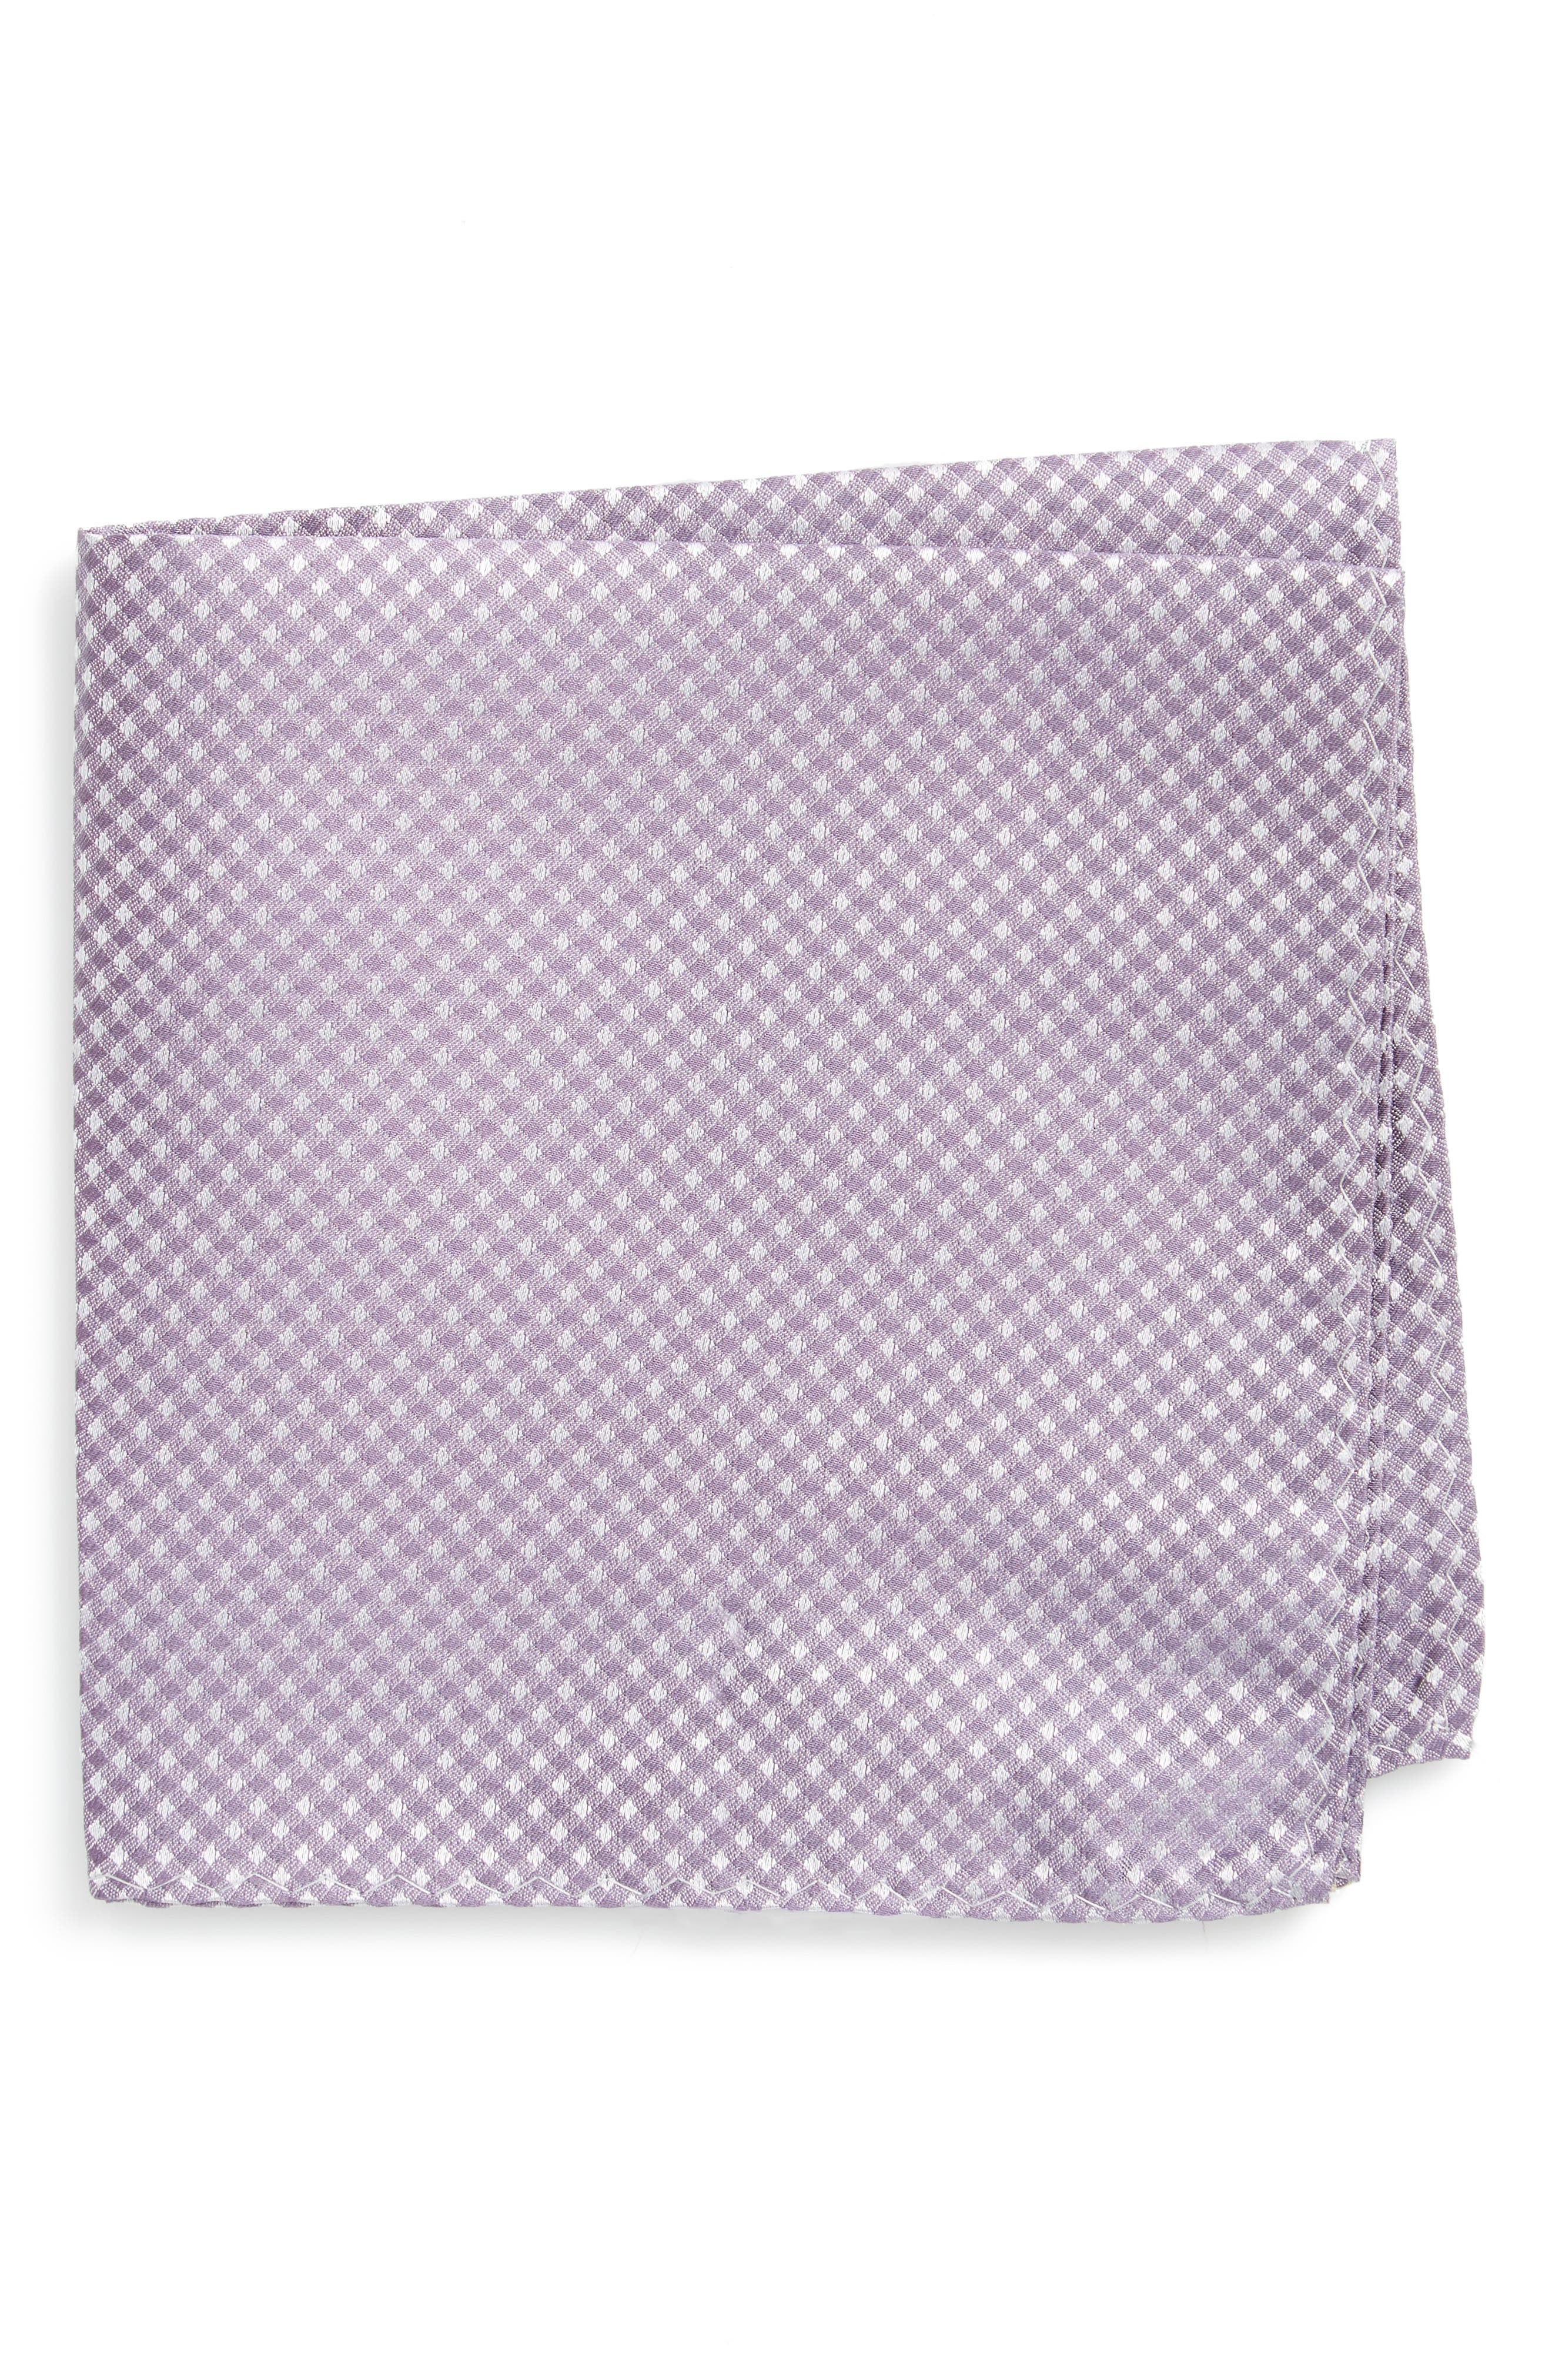 Alternate Image 1 Selected - The Tie Bar Check Silk Pocket Square